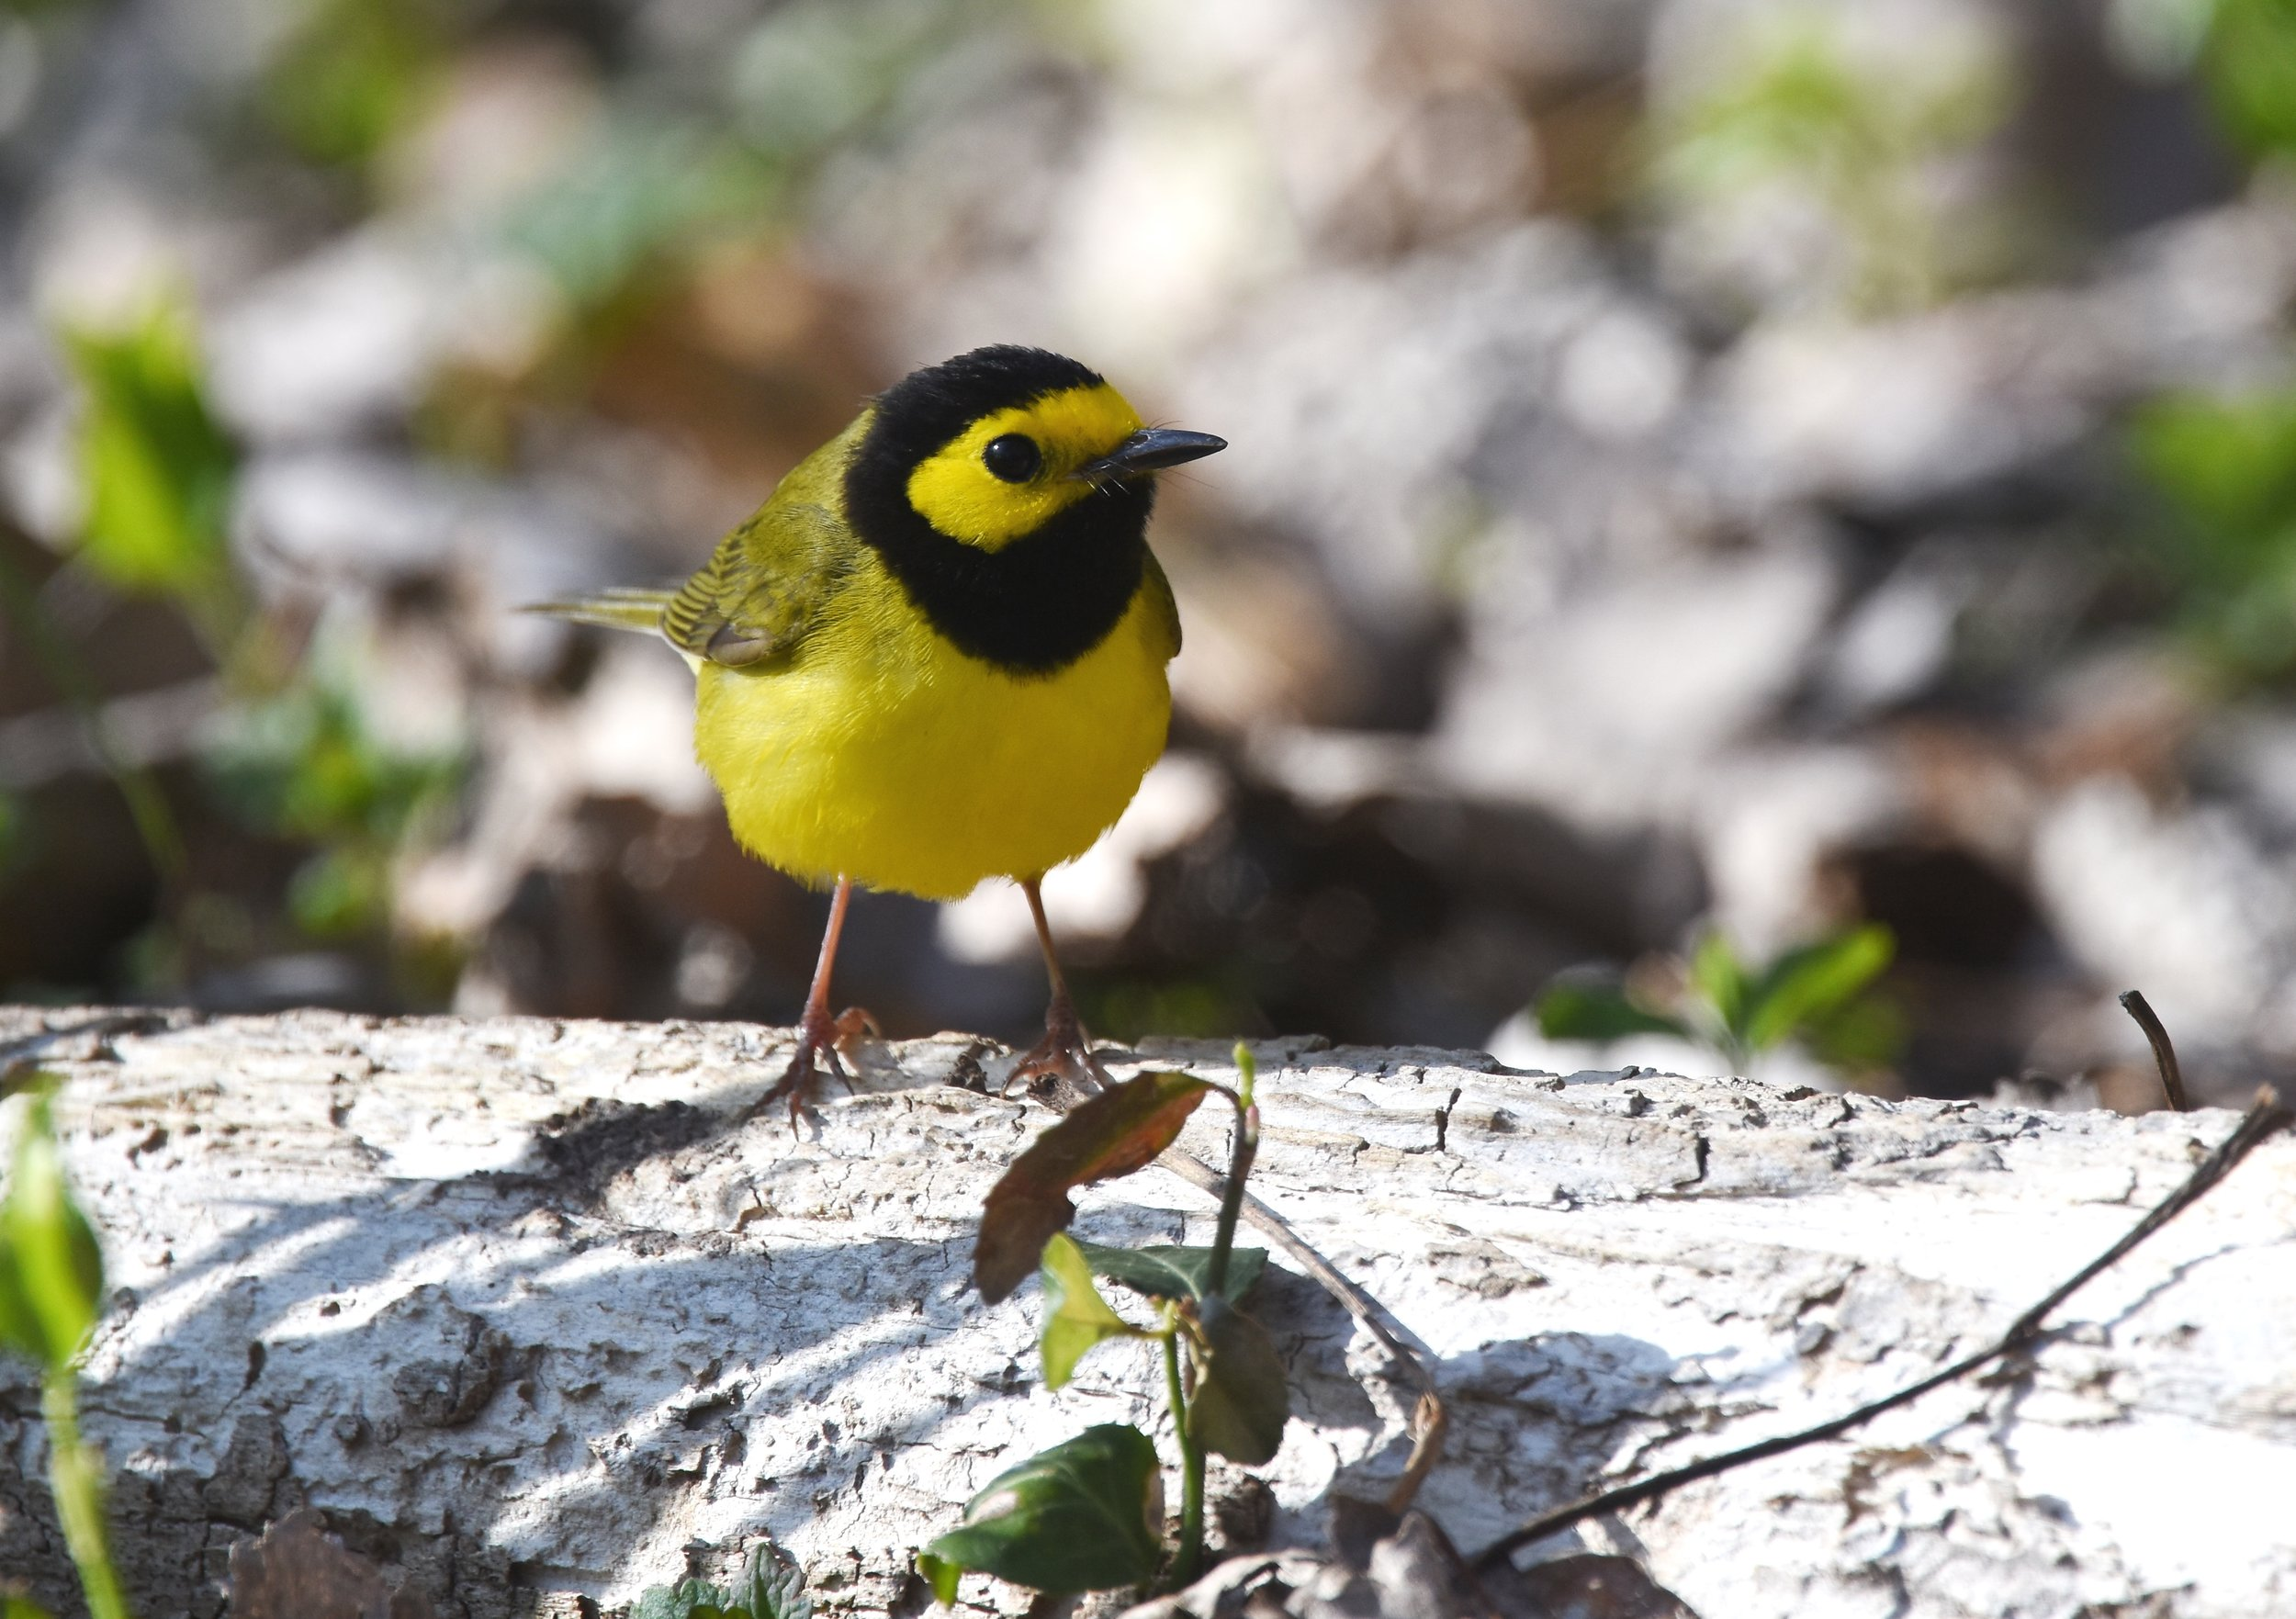 Hooded warbler, photo by Andy Reago & Chrissy McClarren